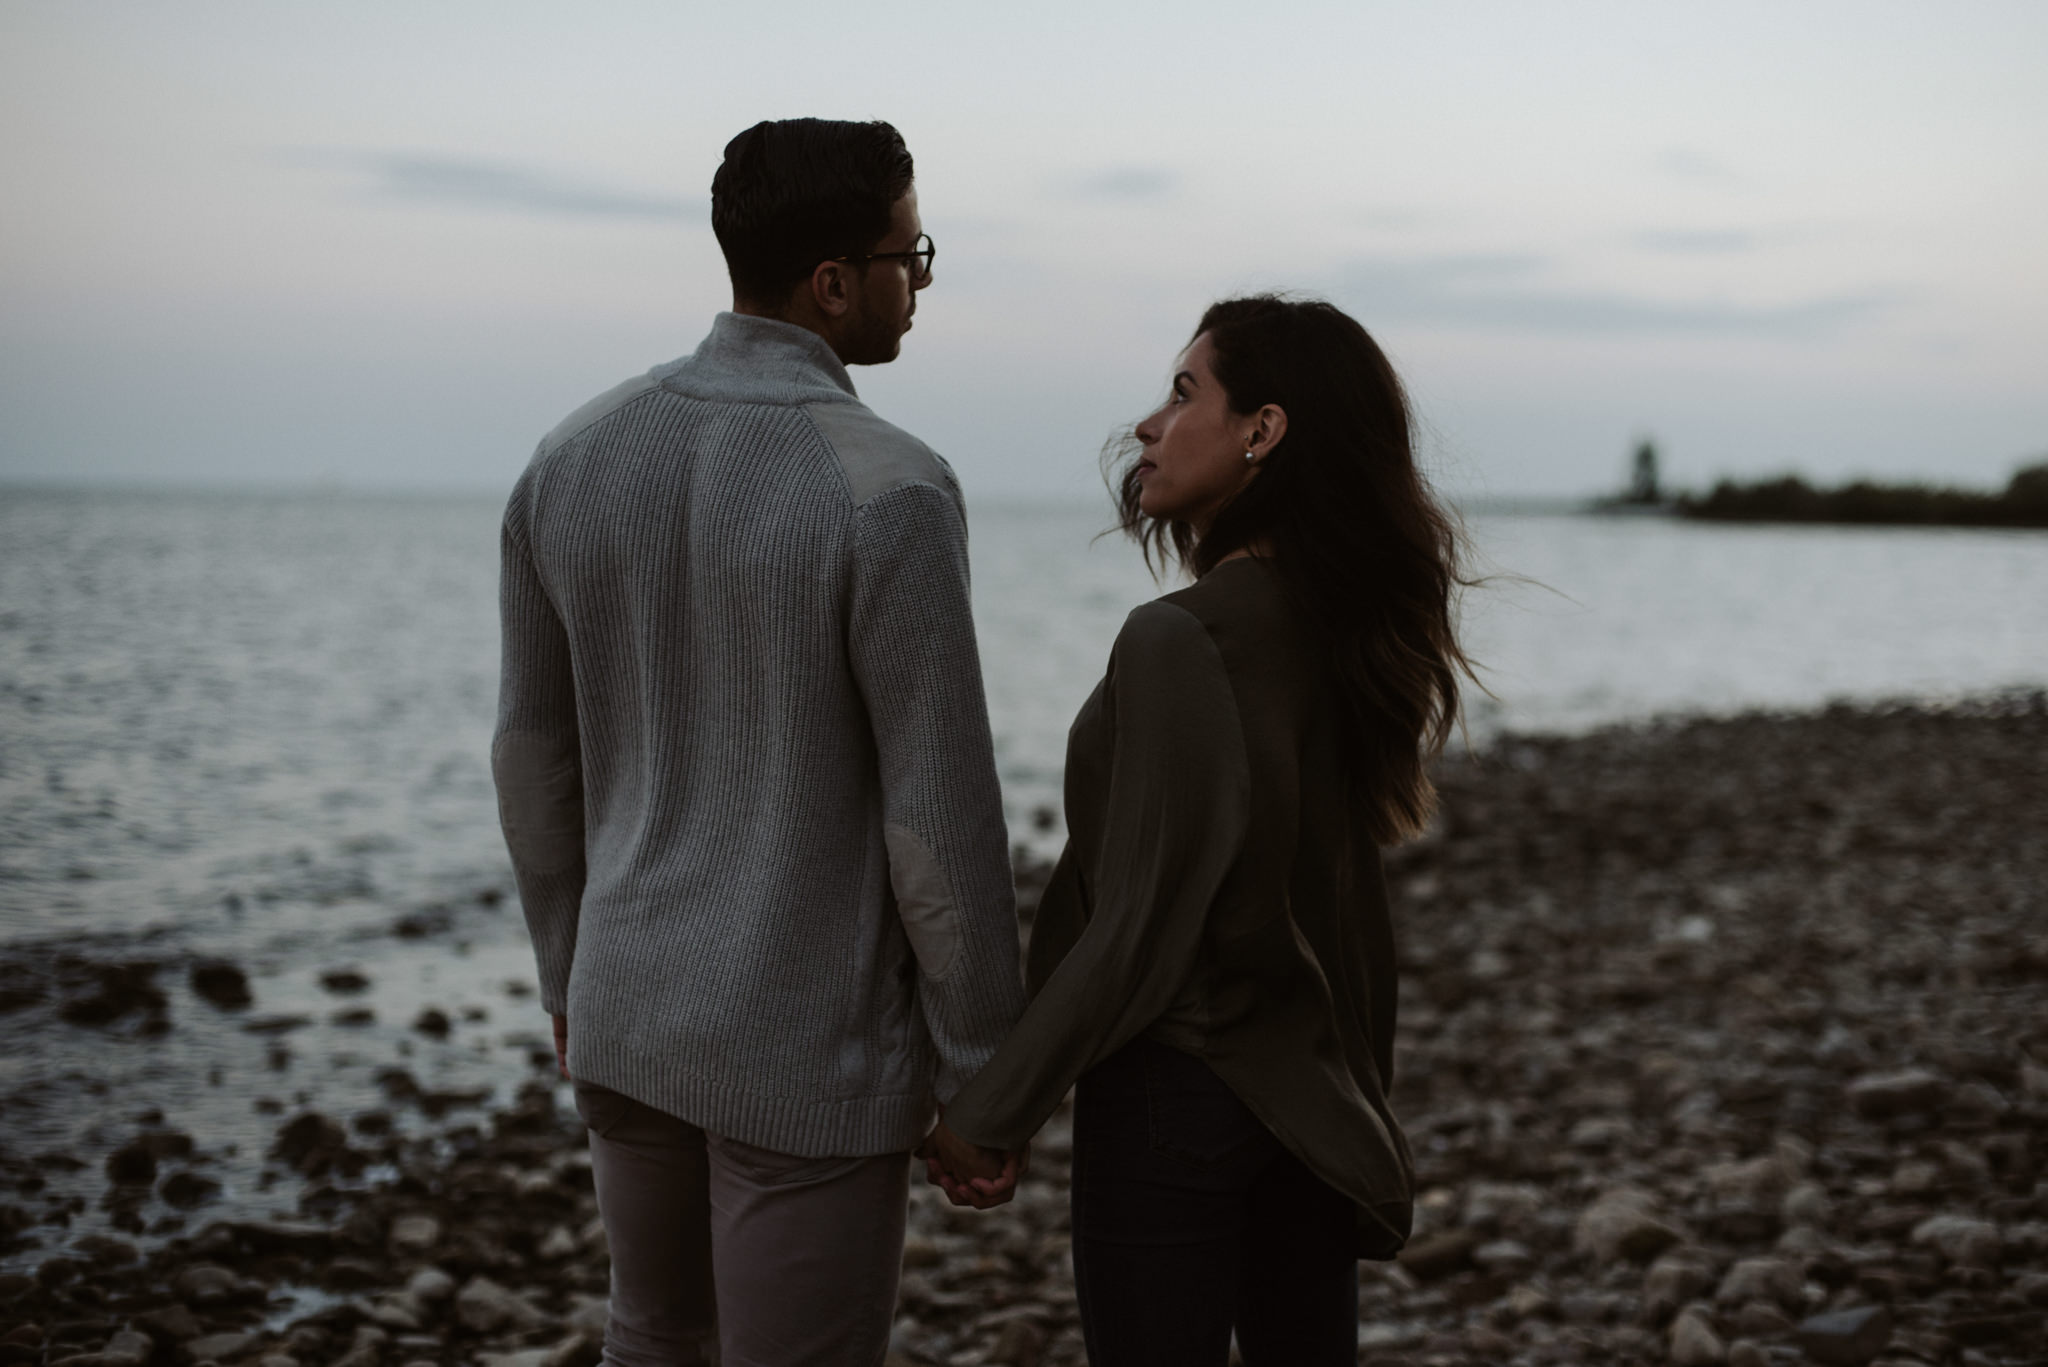 Dreamy Cherry Beach Portraits with some lovers at sunset // Toronto wedding photographer Daring Wanderer